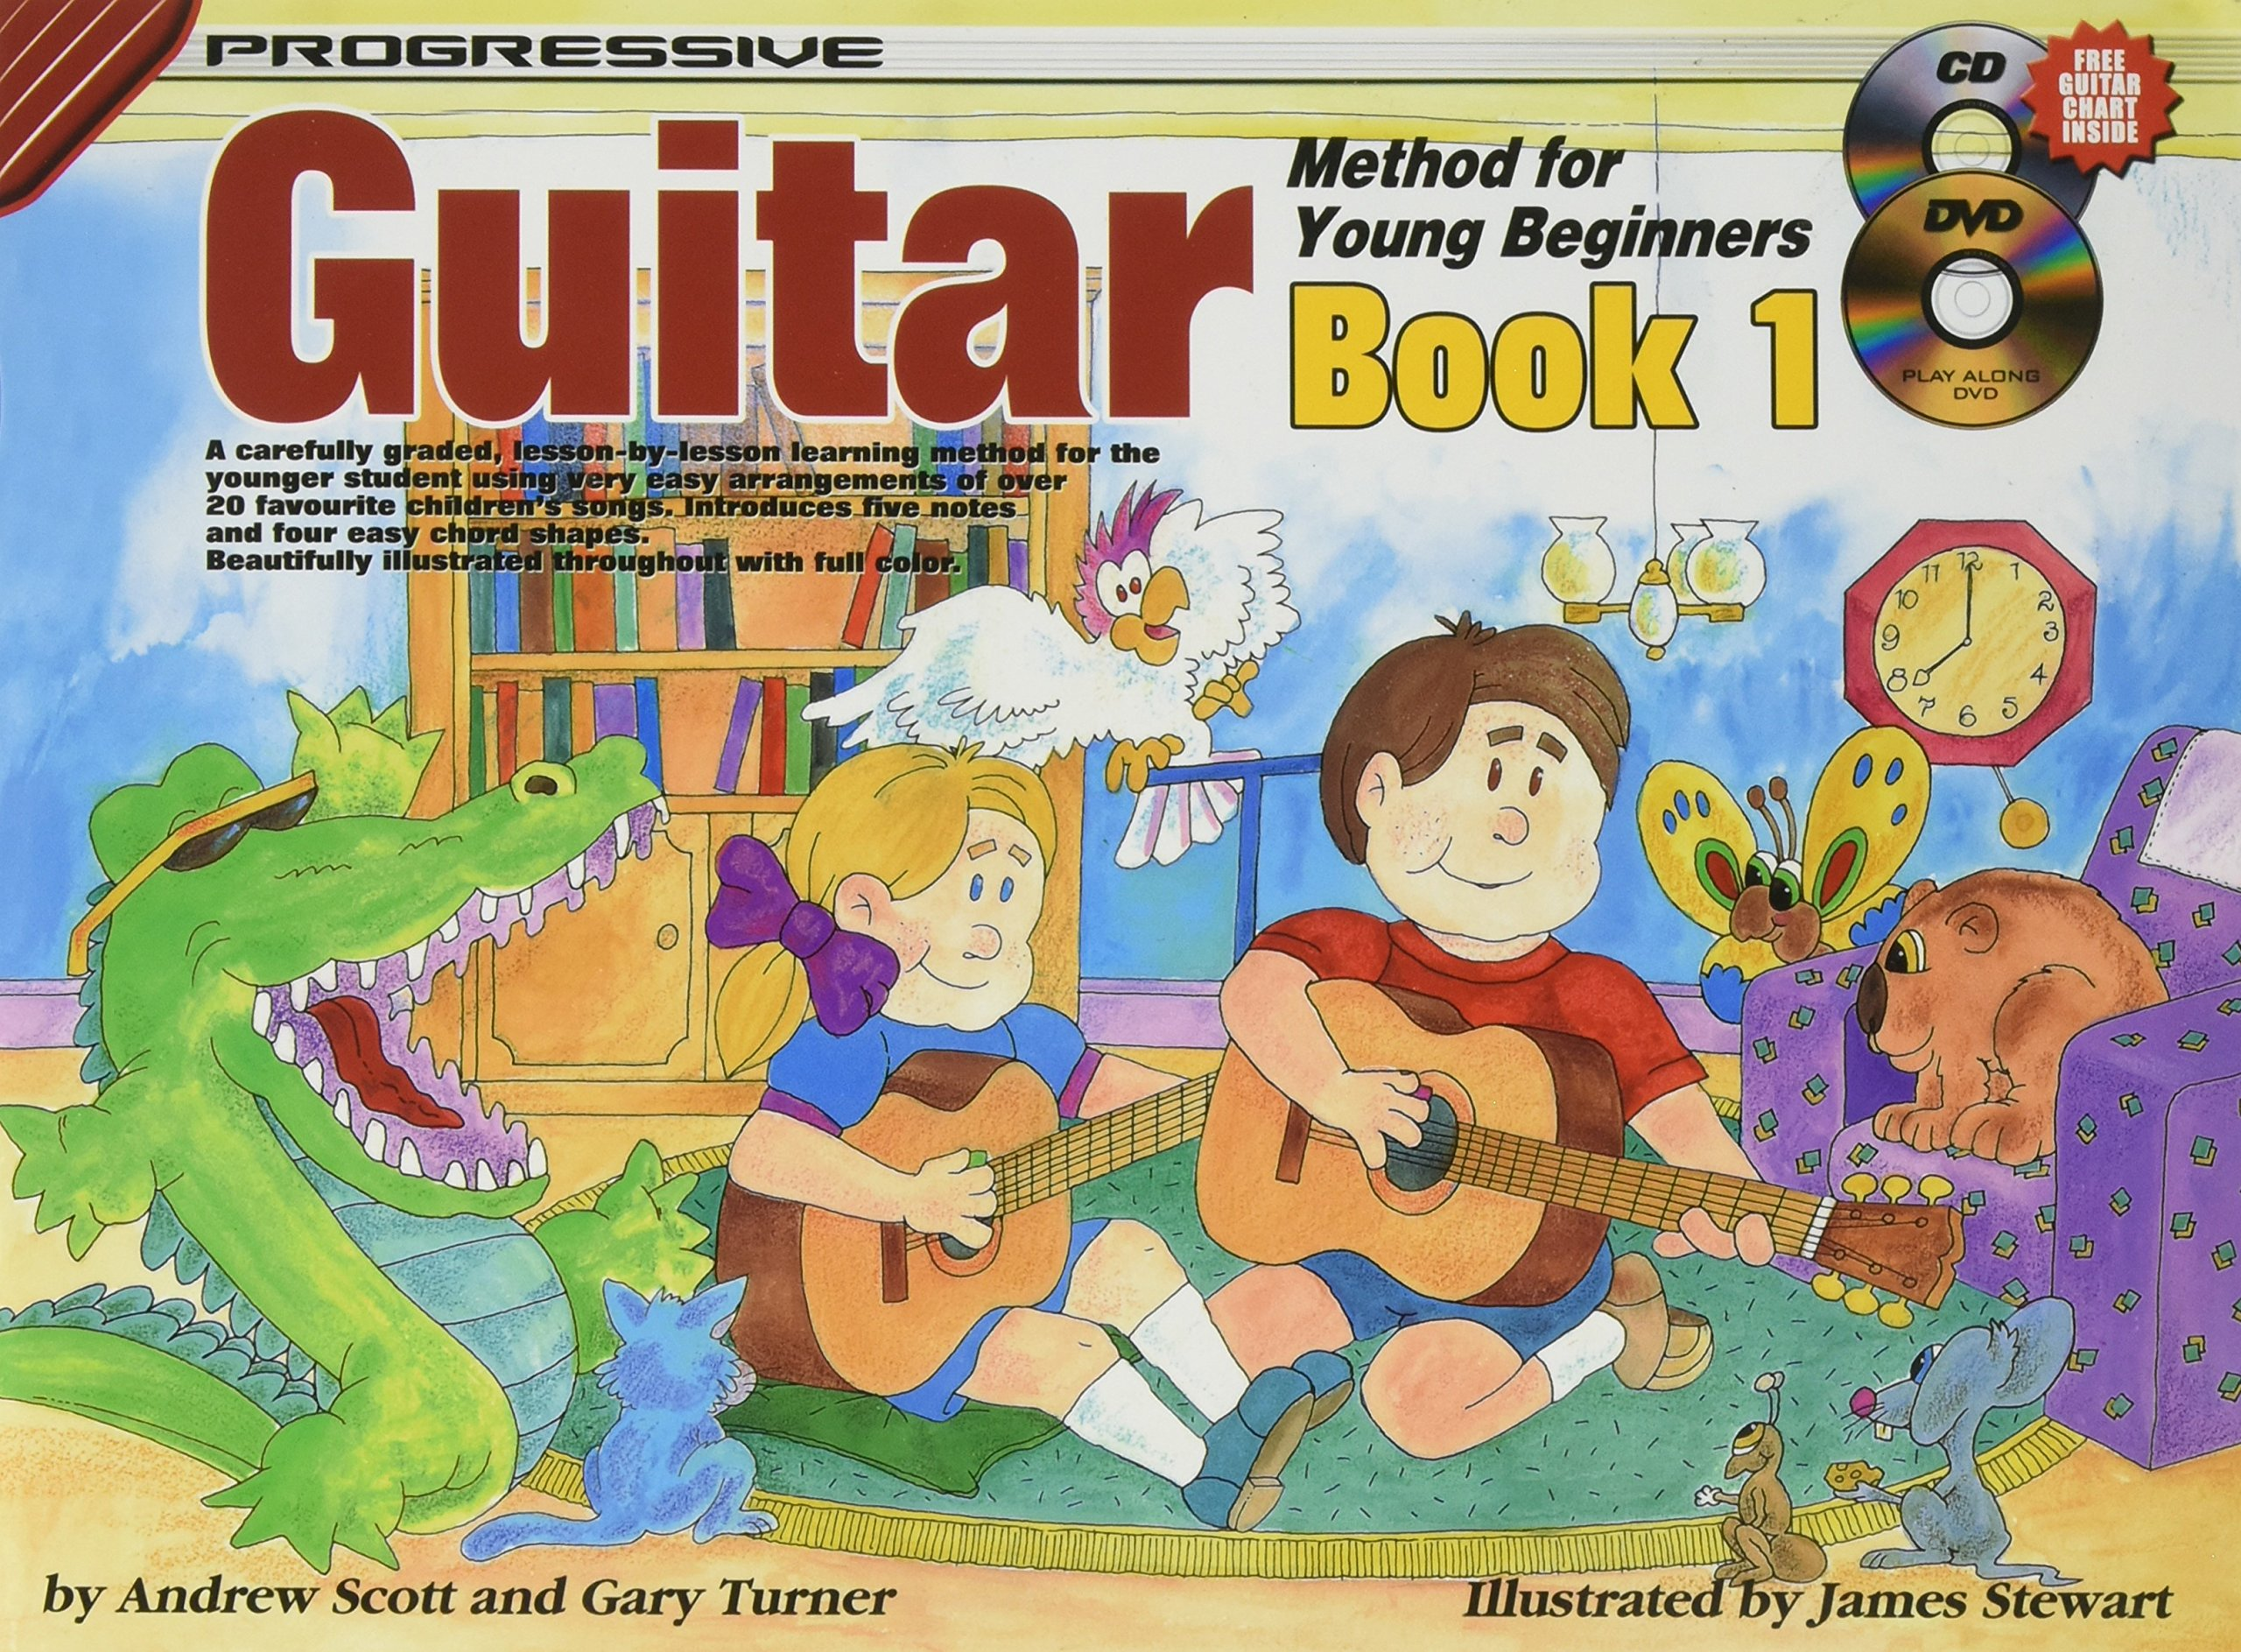 CP18322 - Progressive Guitar Method for Young Beginners Book 1 - Book/Online Audio and Video (Progressive Young Beginners)